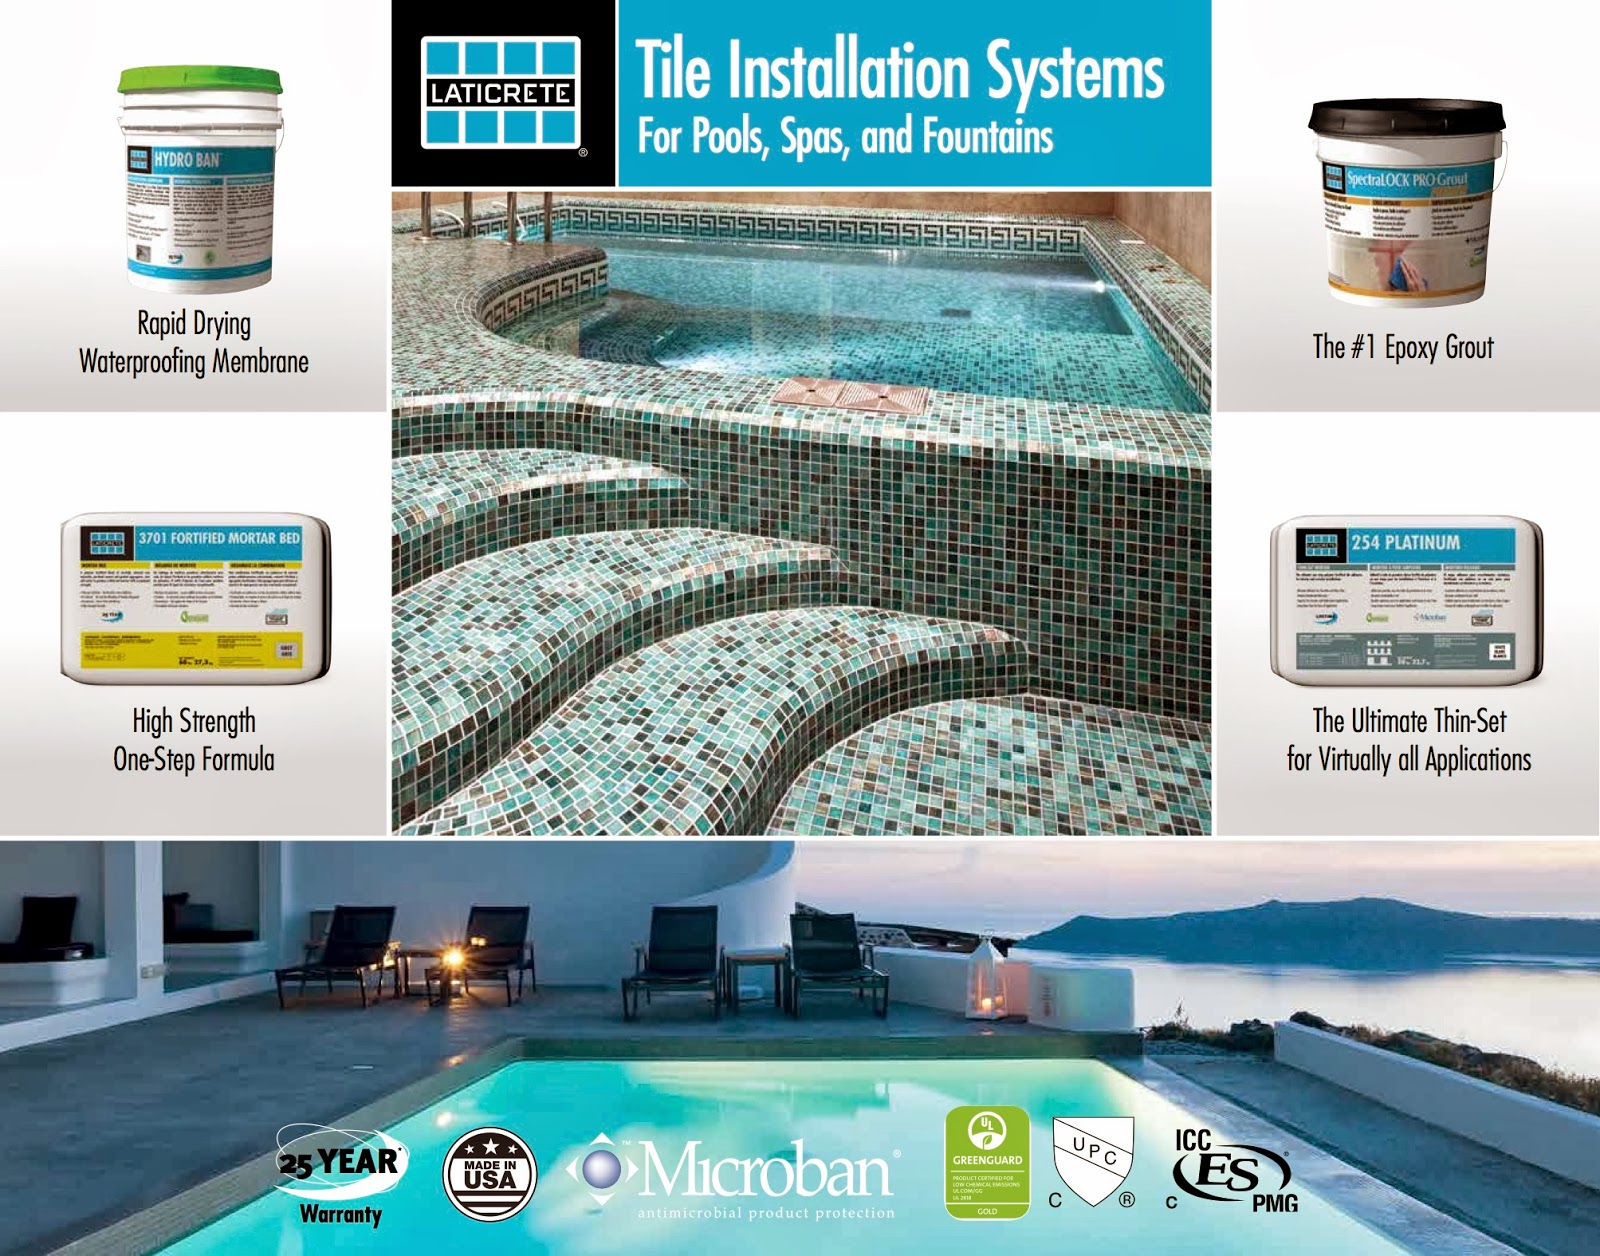 Laticrete conversations pool spa patio expo in vegas for Pool spa show vegas 2015